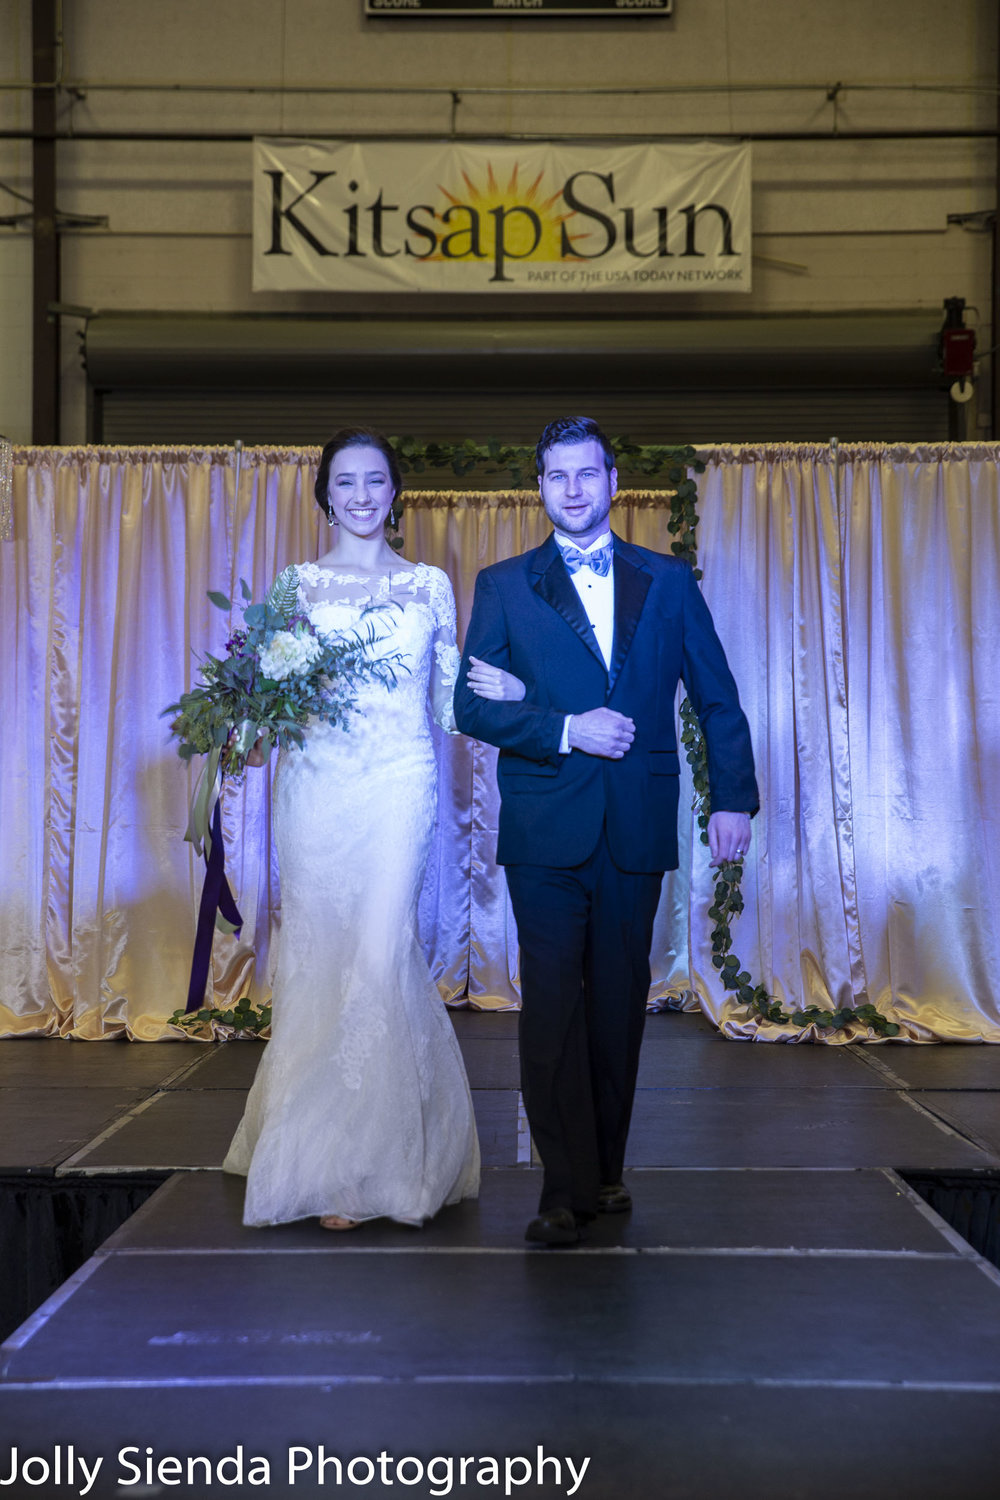 Kitsap Wedding Expo 2019, Jolly Sienda Photography